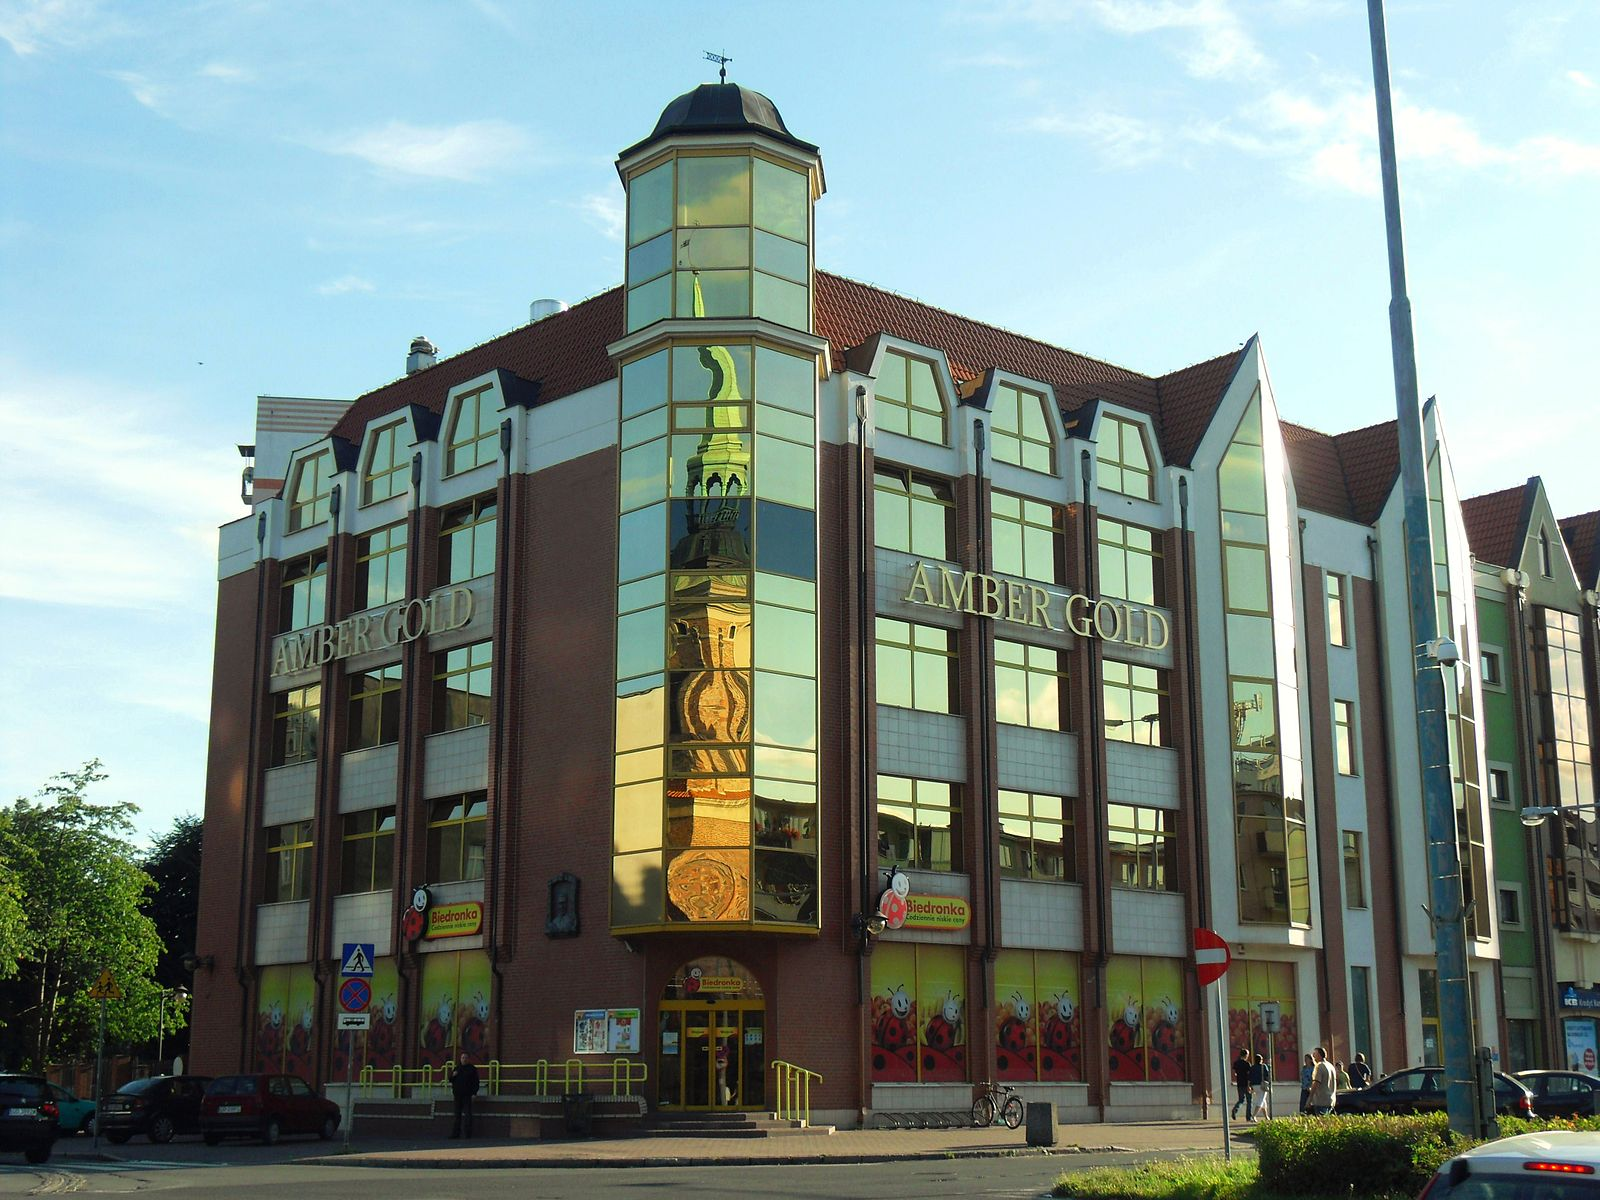 Amber Gold headquarters in Gdansk